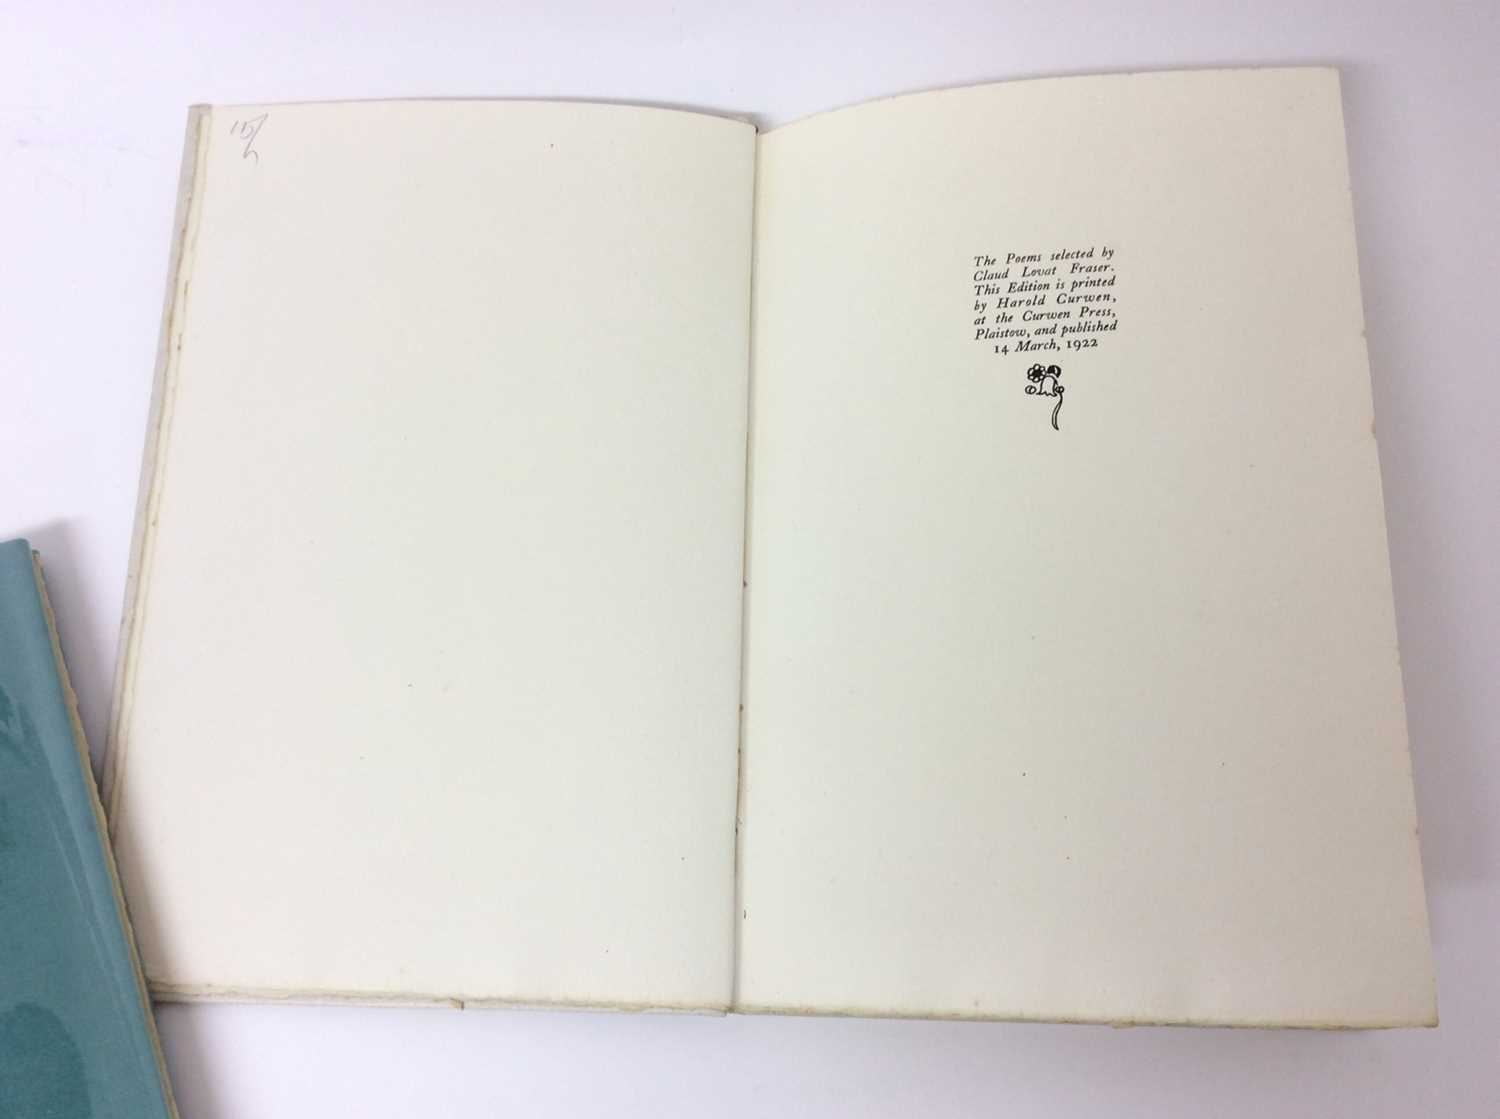 Evelyn Ansell - Twenty Five Poems, also Poems from the Works of Charles Cotton, illustrated by Claud - Image 9 of 13